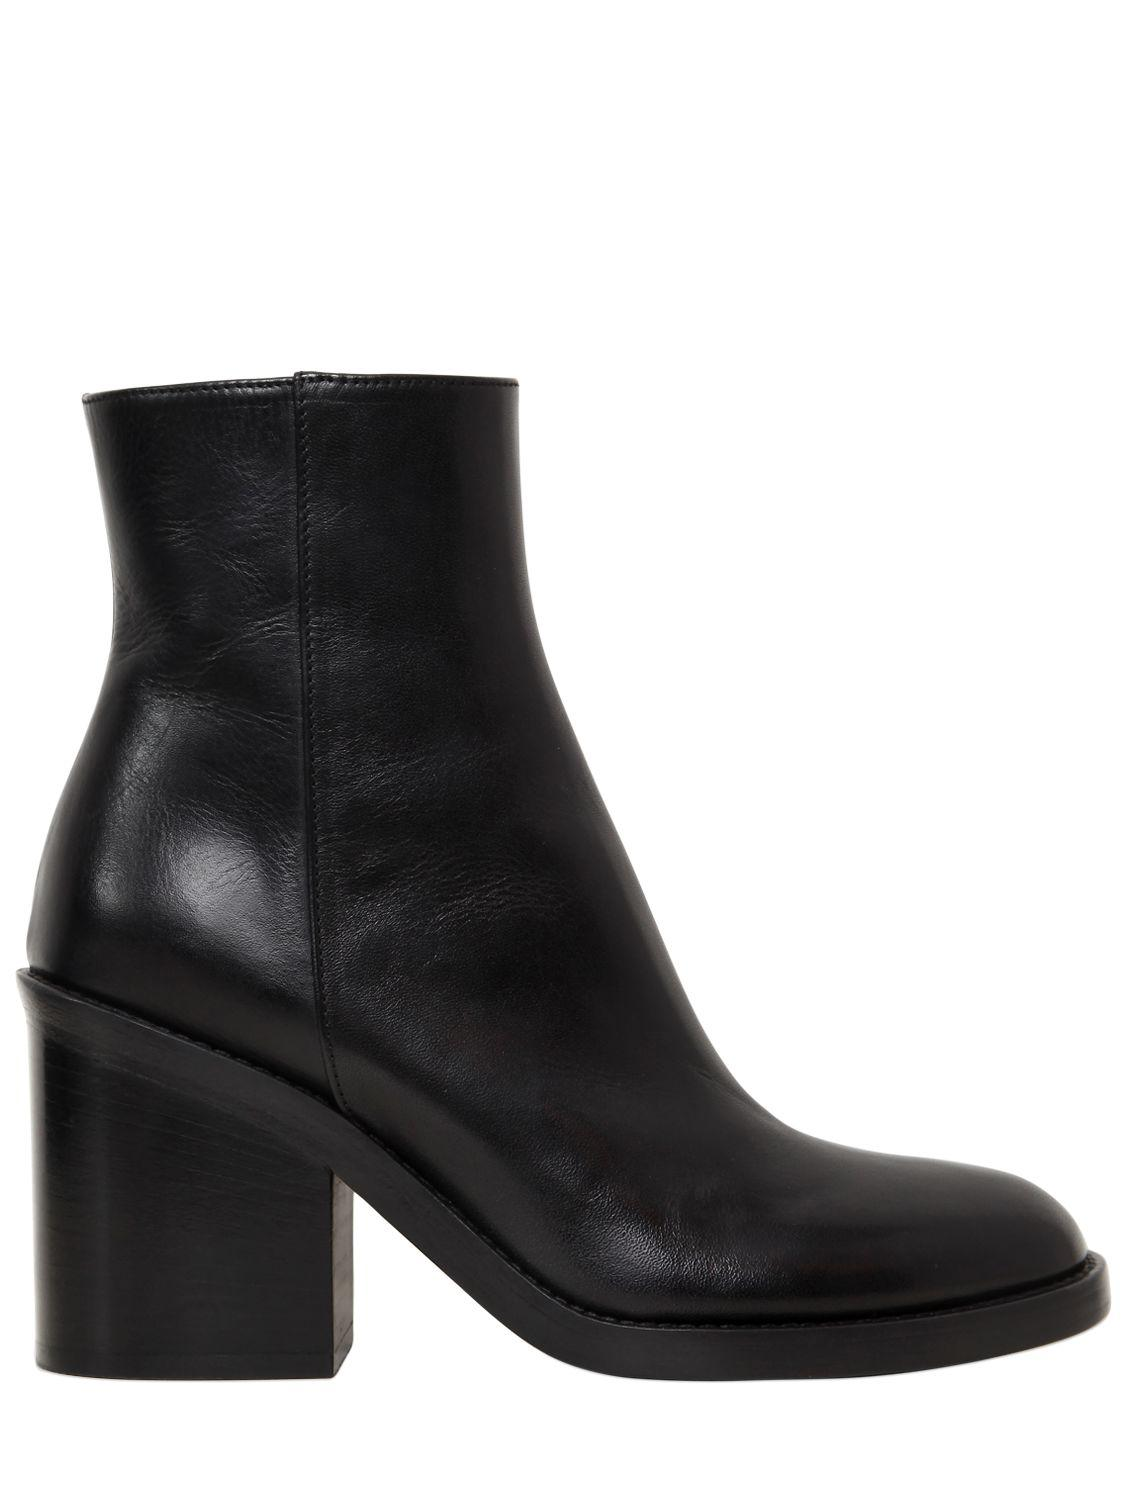 outlet high quality Ann Demeulemeester stiletto ankle boots wiki cheap price on hot sale SIEaxcq